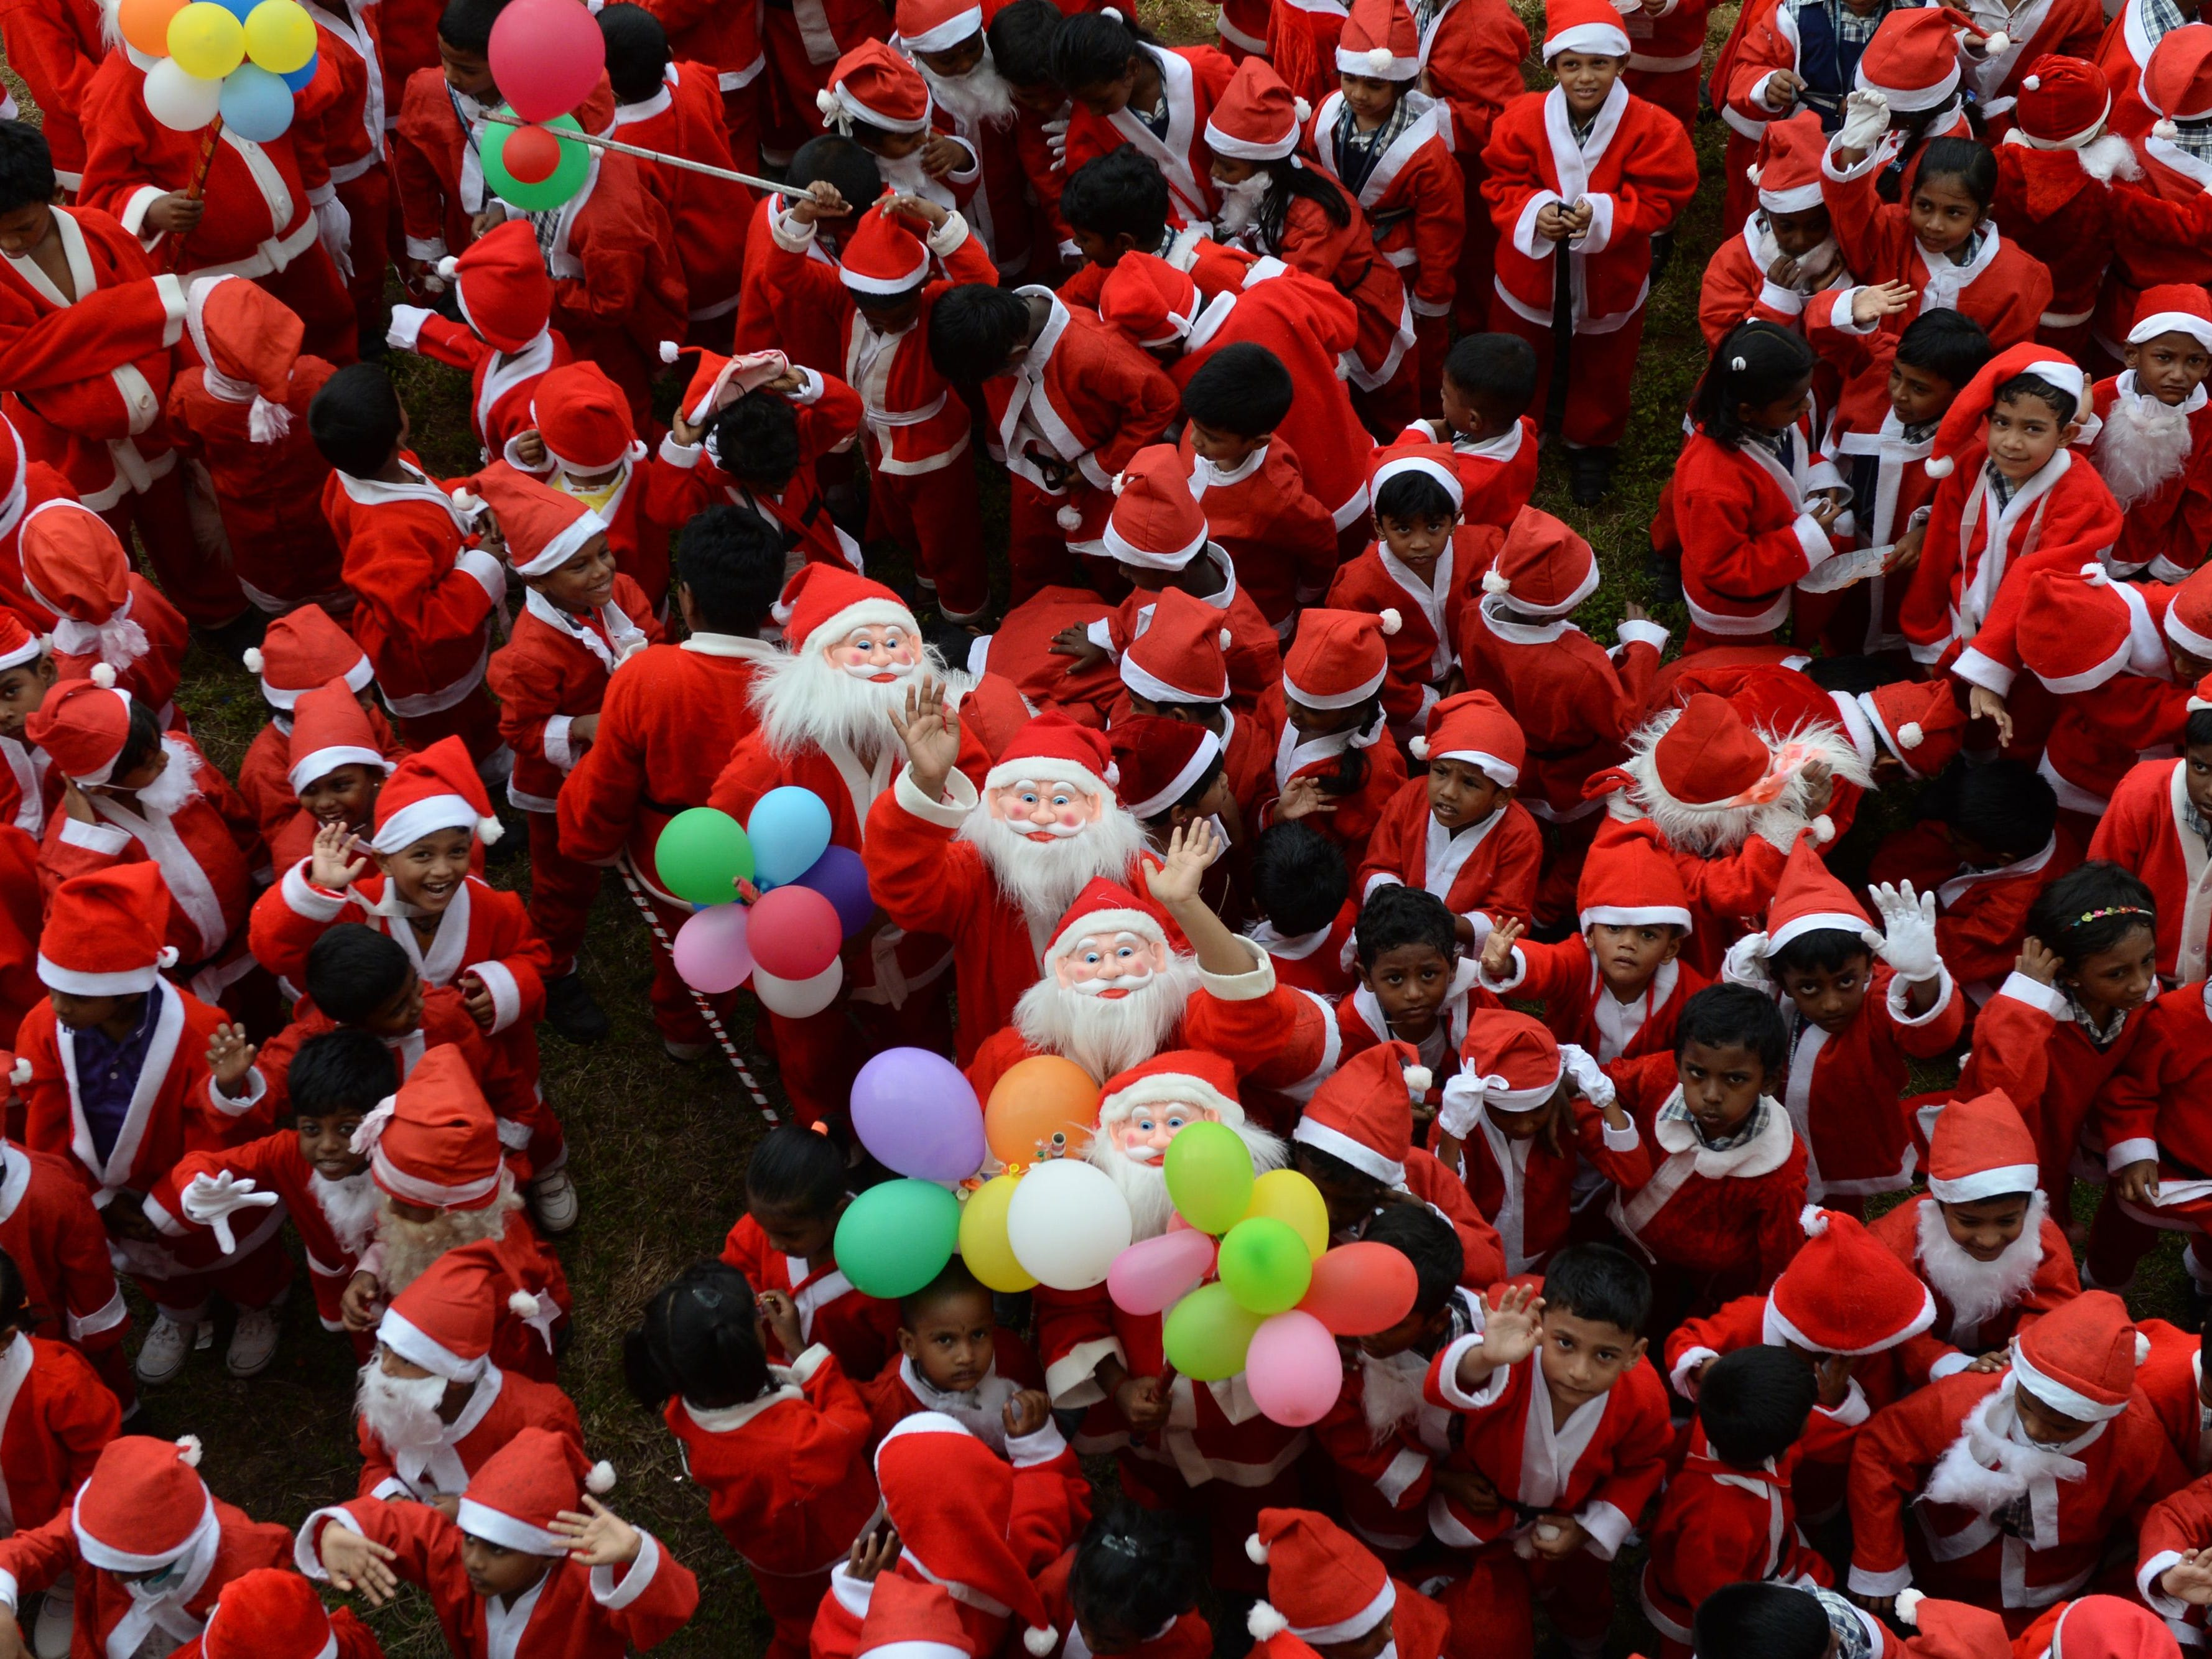 Indian schoolchildren dressed as Santa Claus take part in a Christmas event at a school in Chennai, India, Dec. 5, 2018.